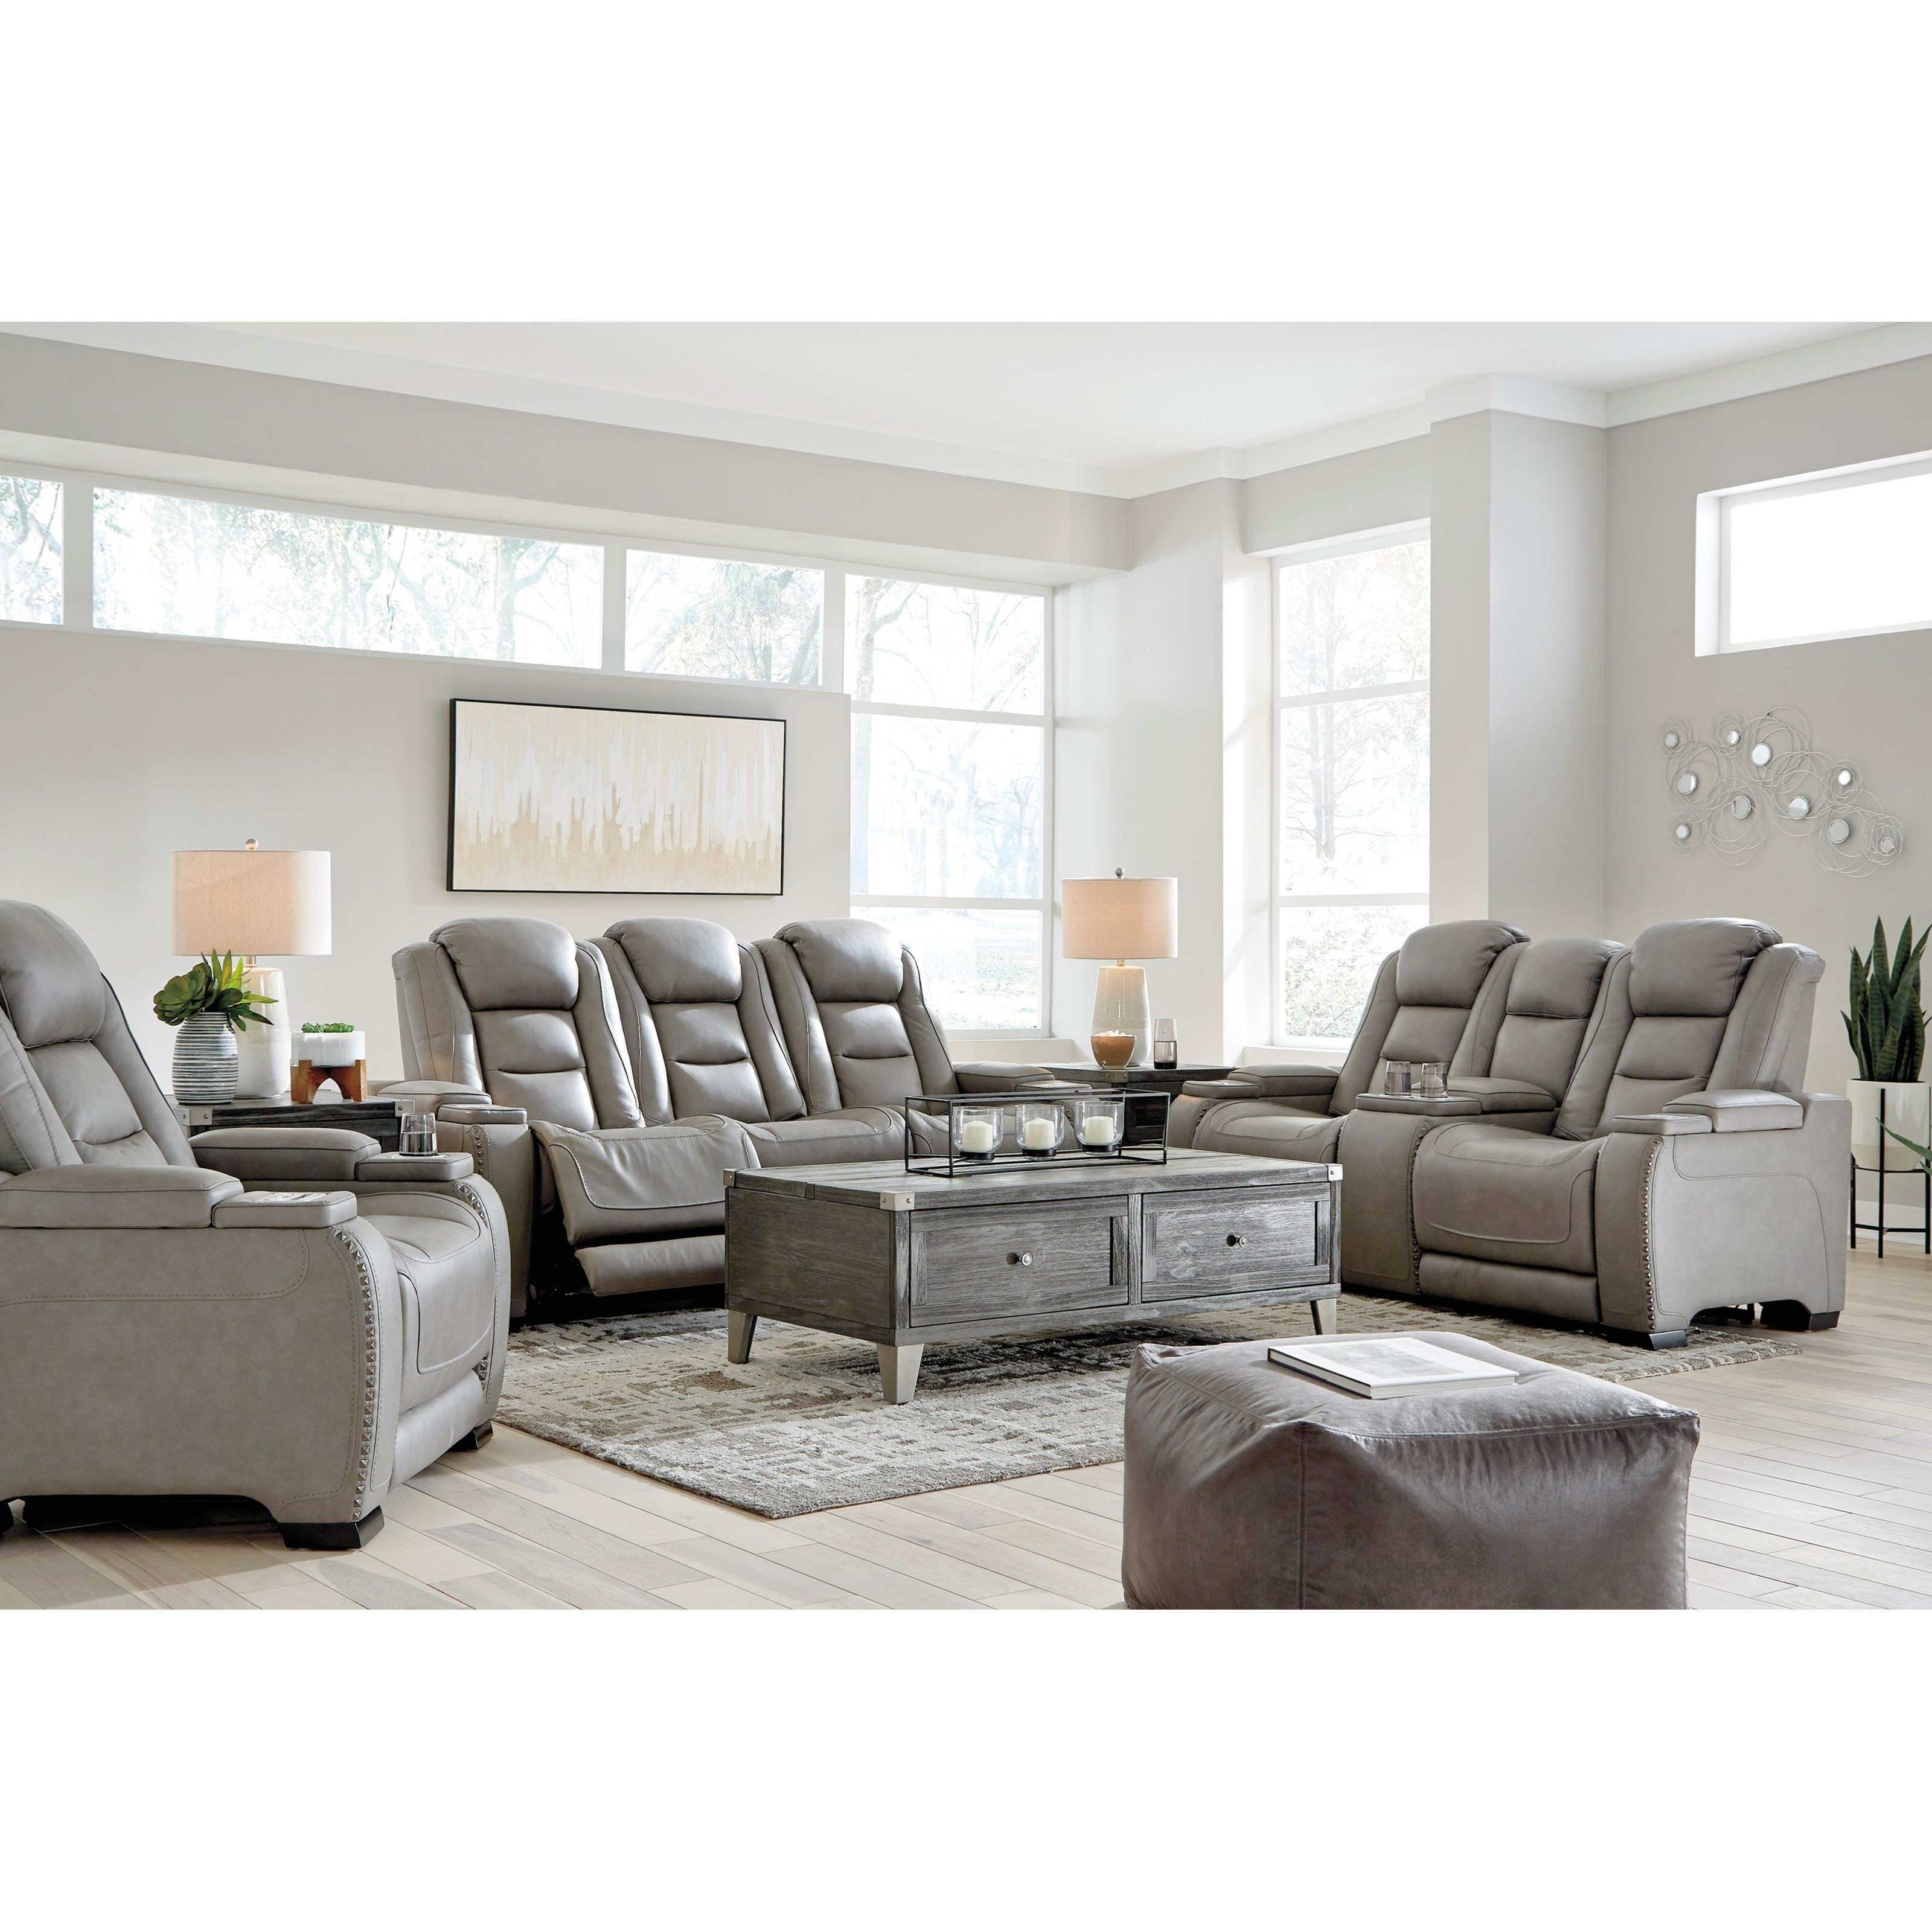 The Man-Den Reclining Living Room Group by Ashley (Signature Design) at Johnny Janosik